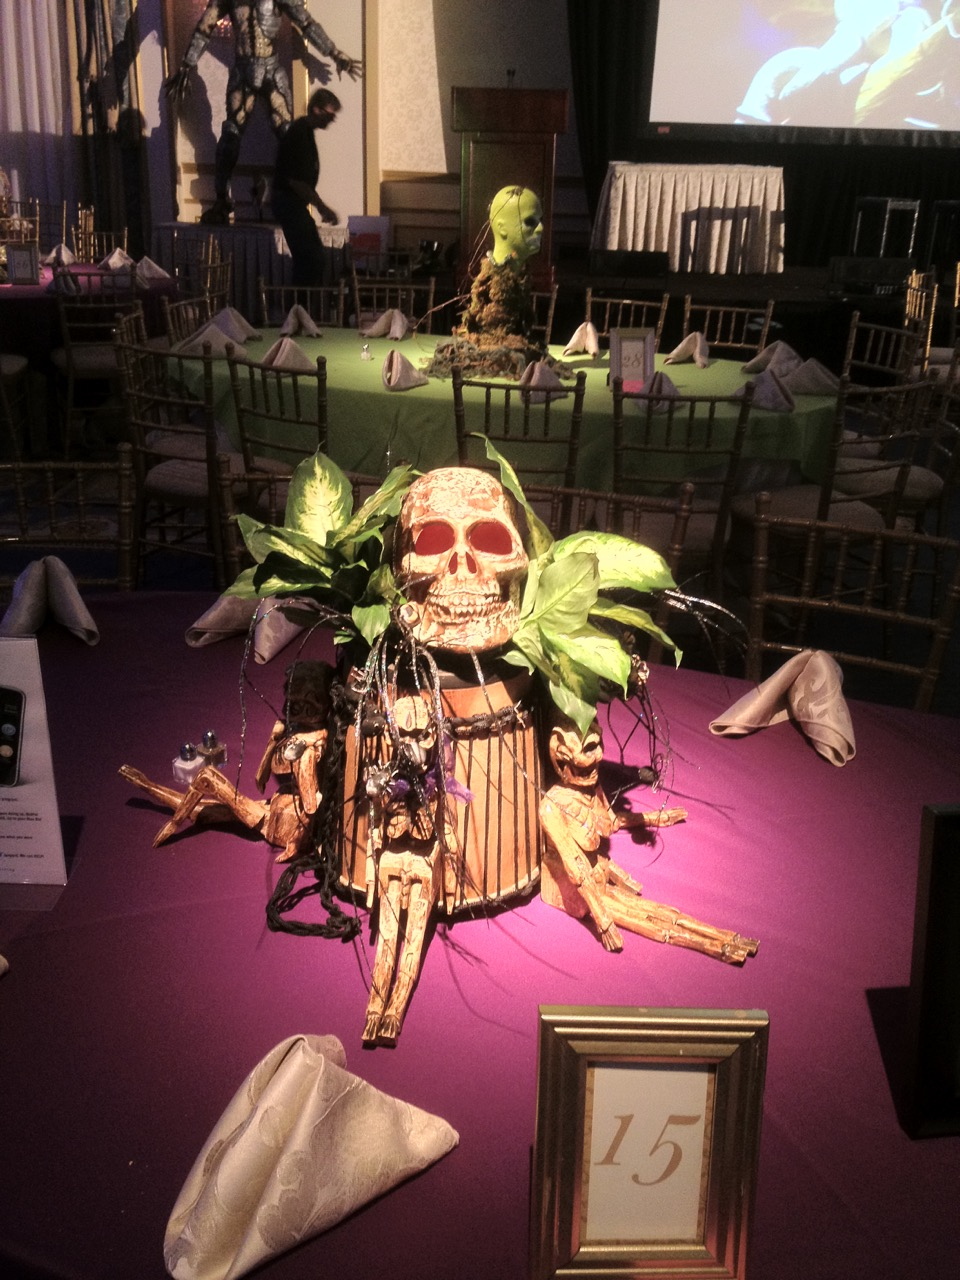 Halloween+Decor+Rentals+from+Eggsotic+Events+NJ+NYC+-+5.jpg